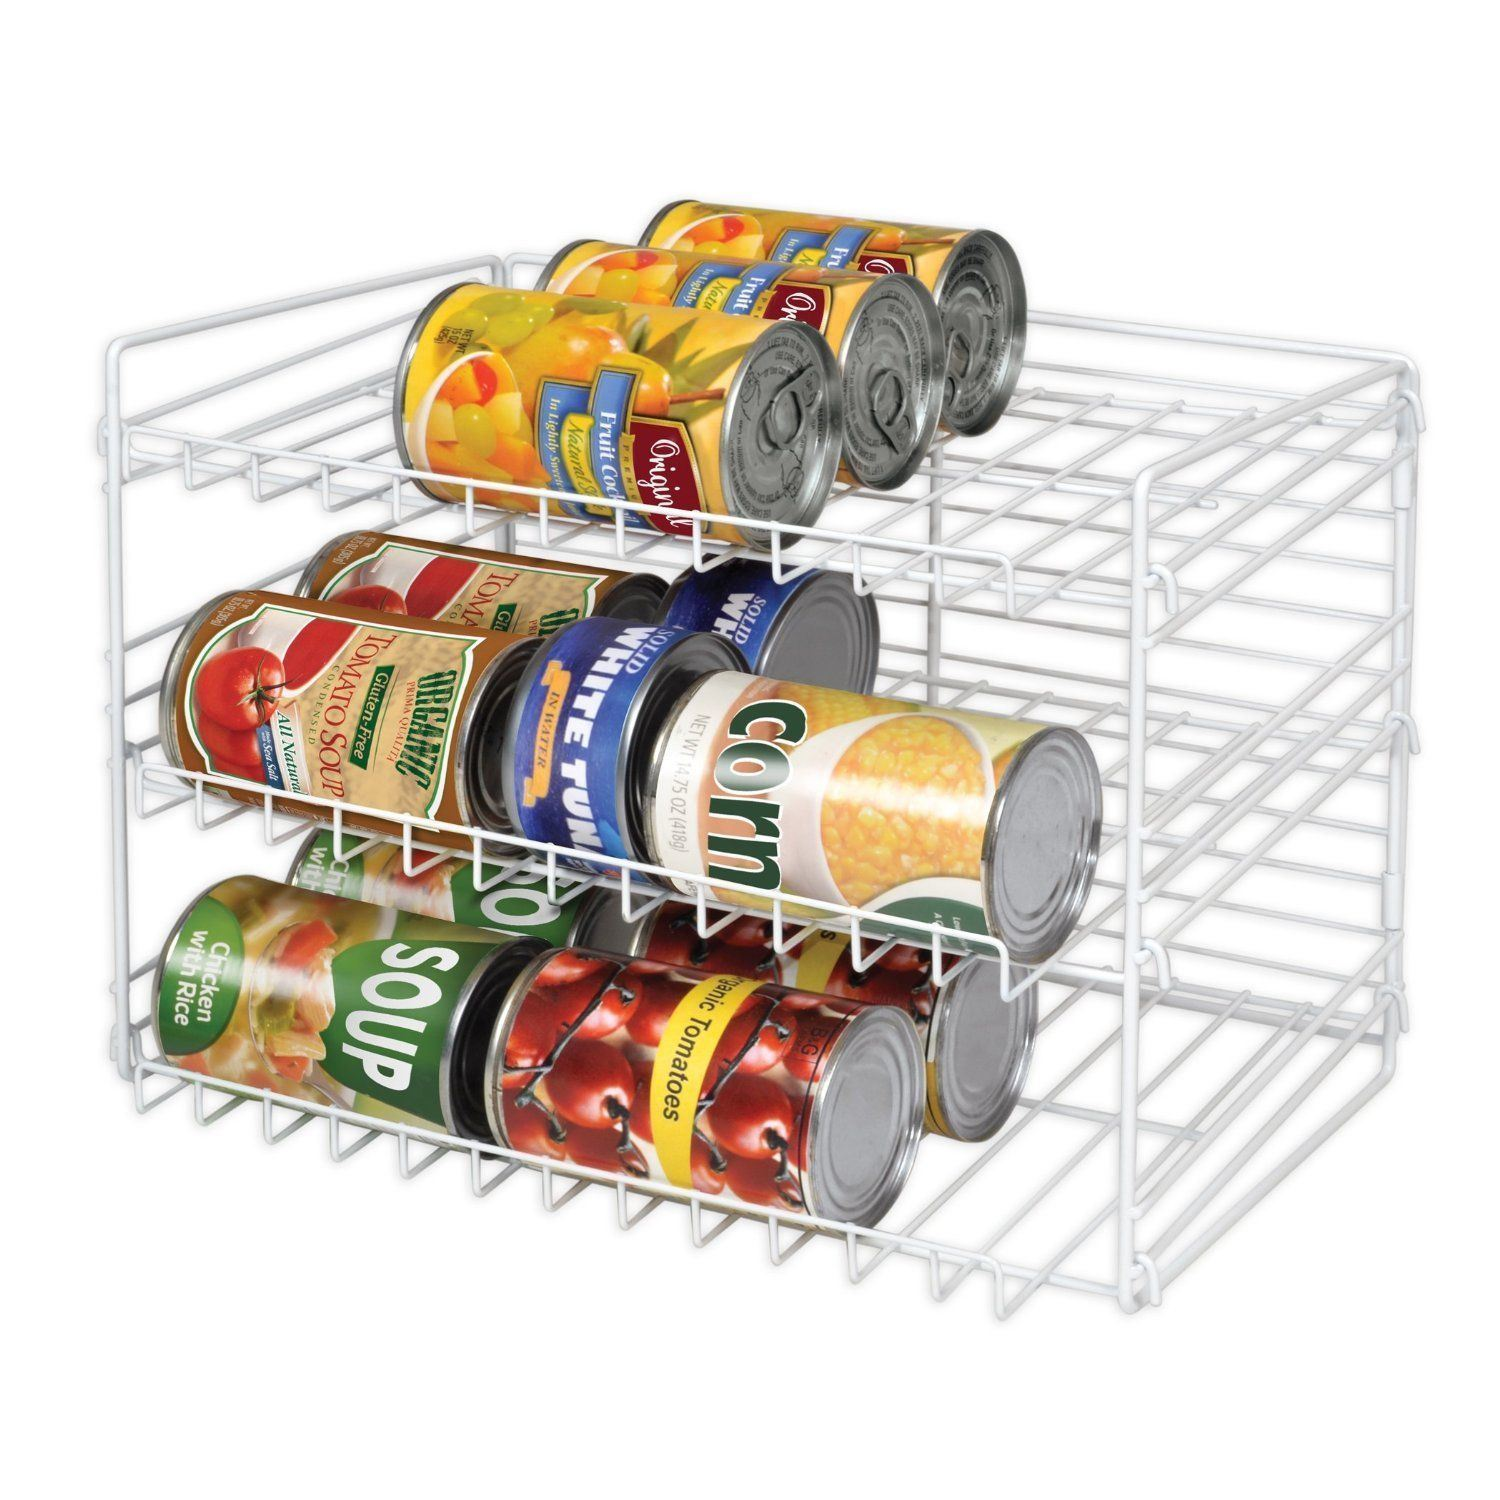 Kitchen Can Food Storage Rack Organizer Pantry Shelves Goods Cans Shelf Holder 1